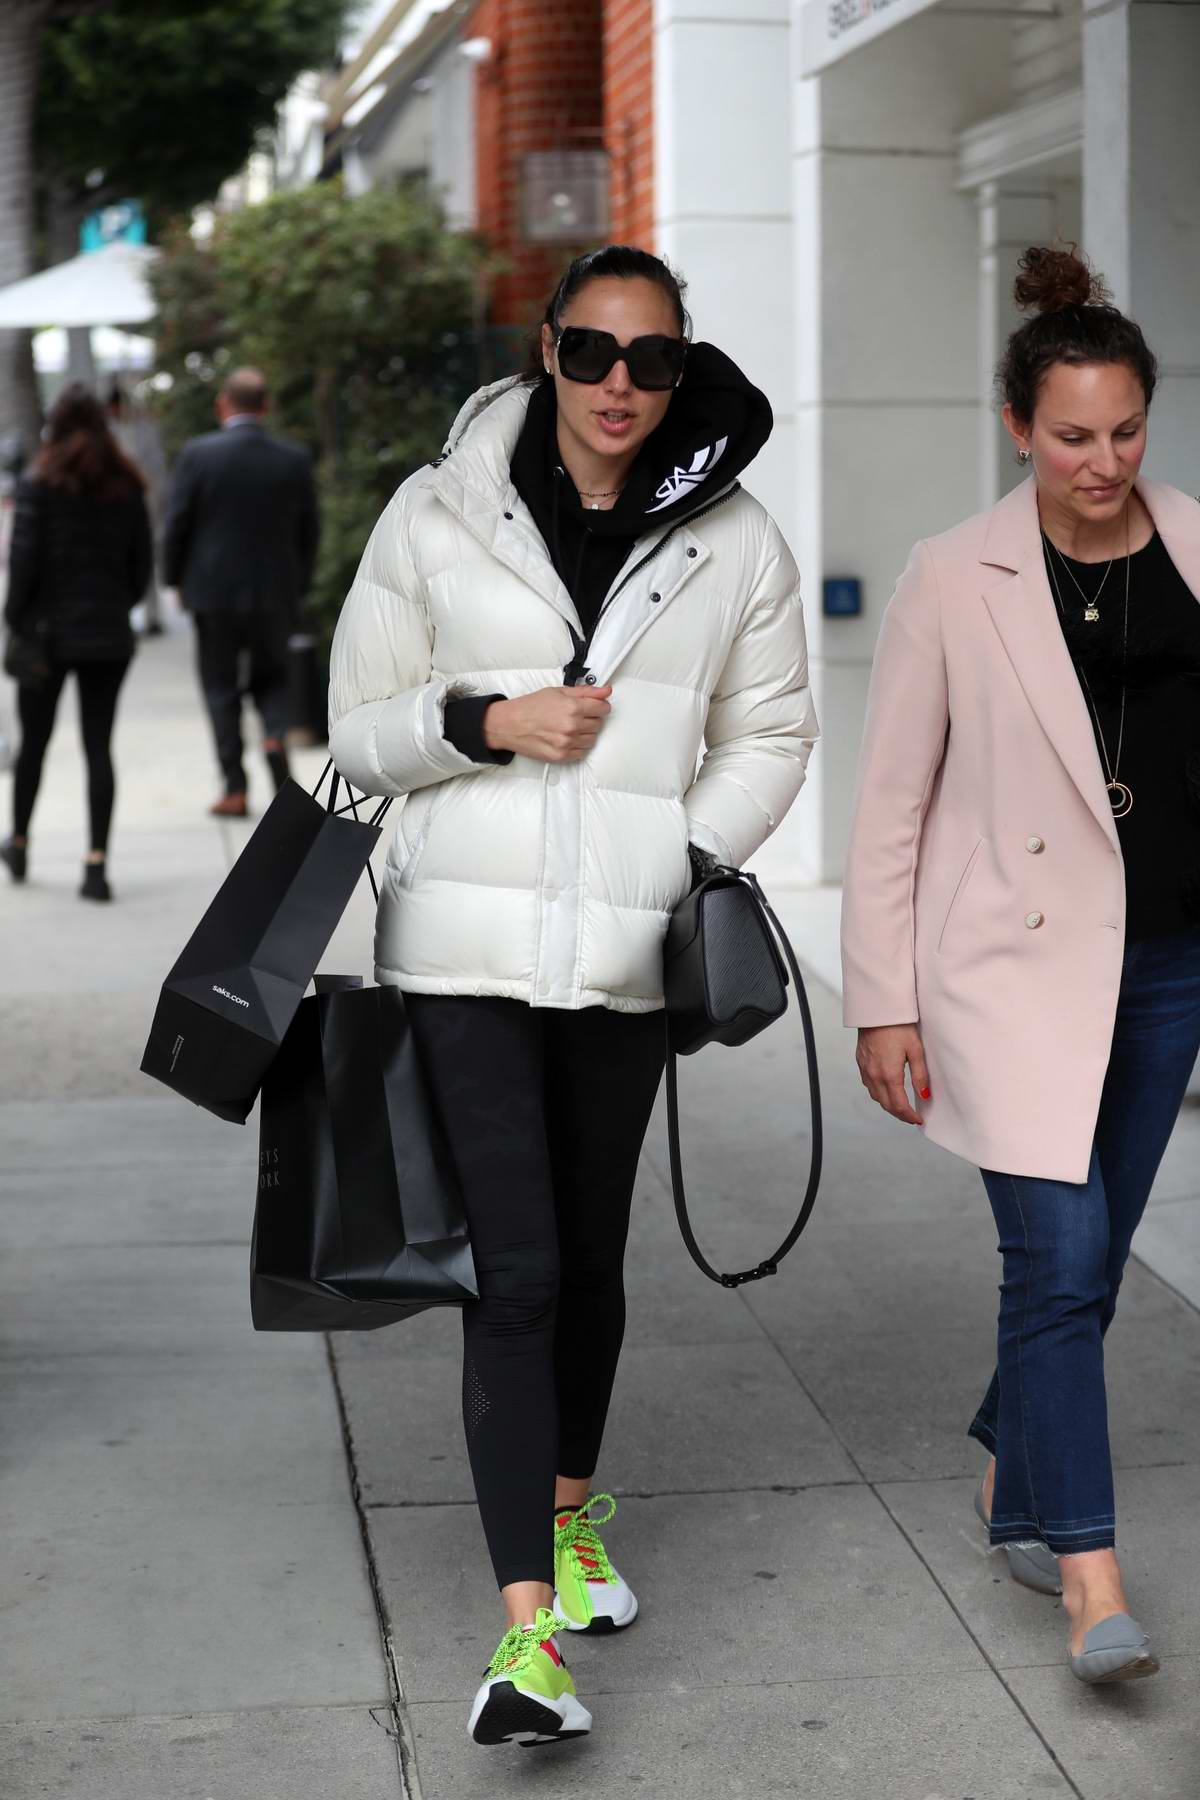 Gal Gadot wears a white puffer jacket and black leggings while out shopping at Saks and Barneys New York in Beverly Hills, Los Angeles